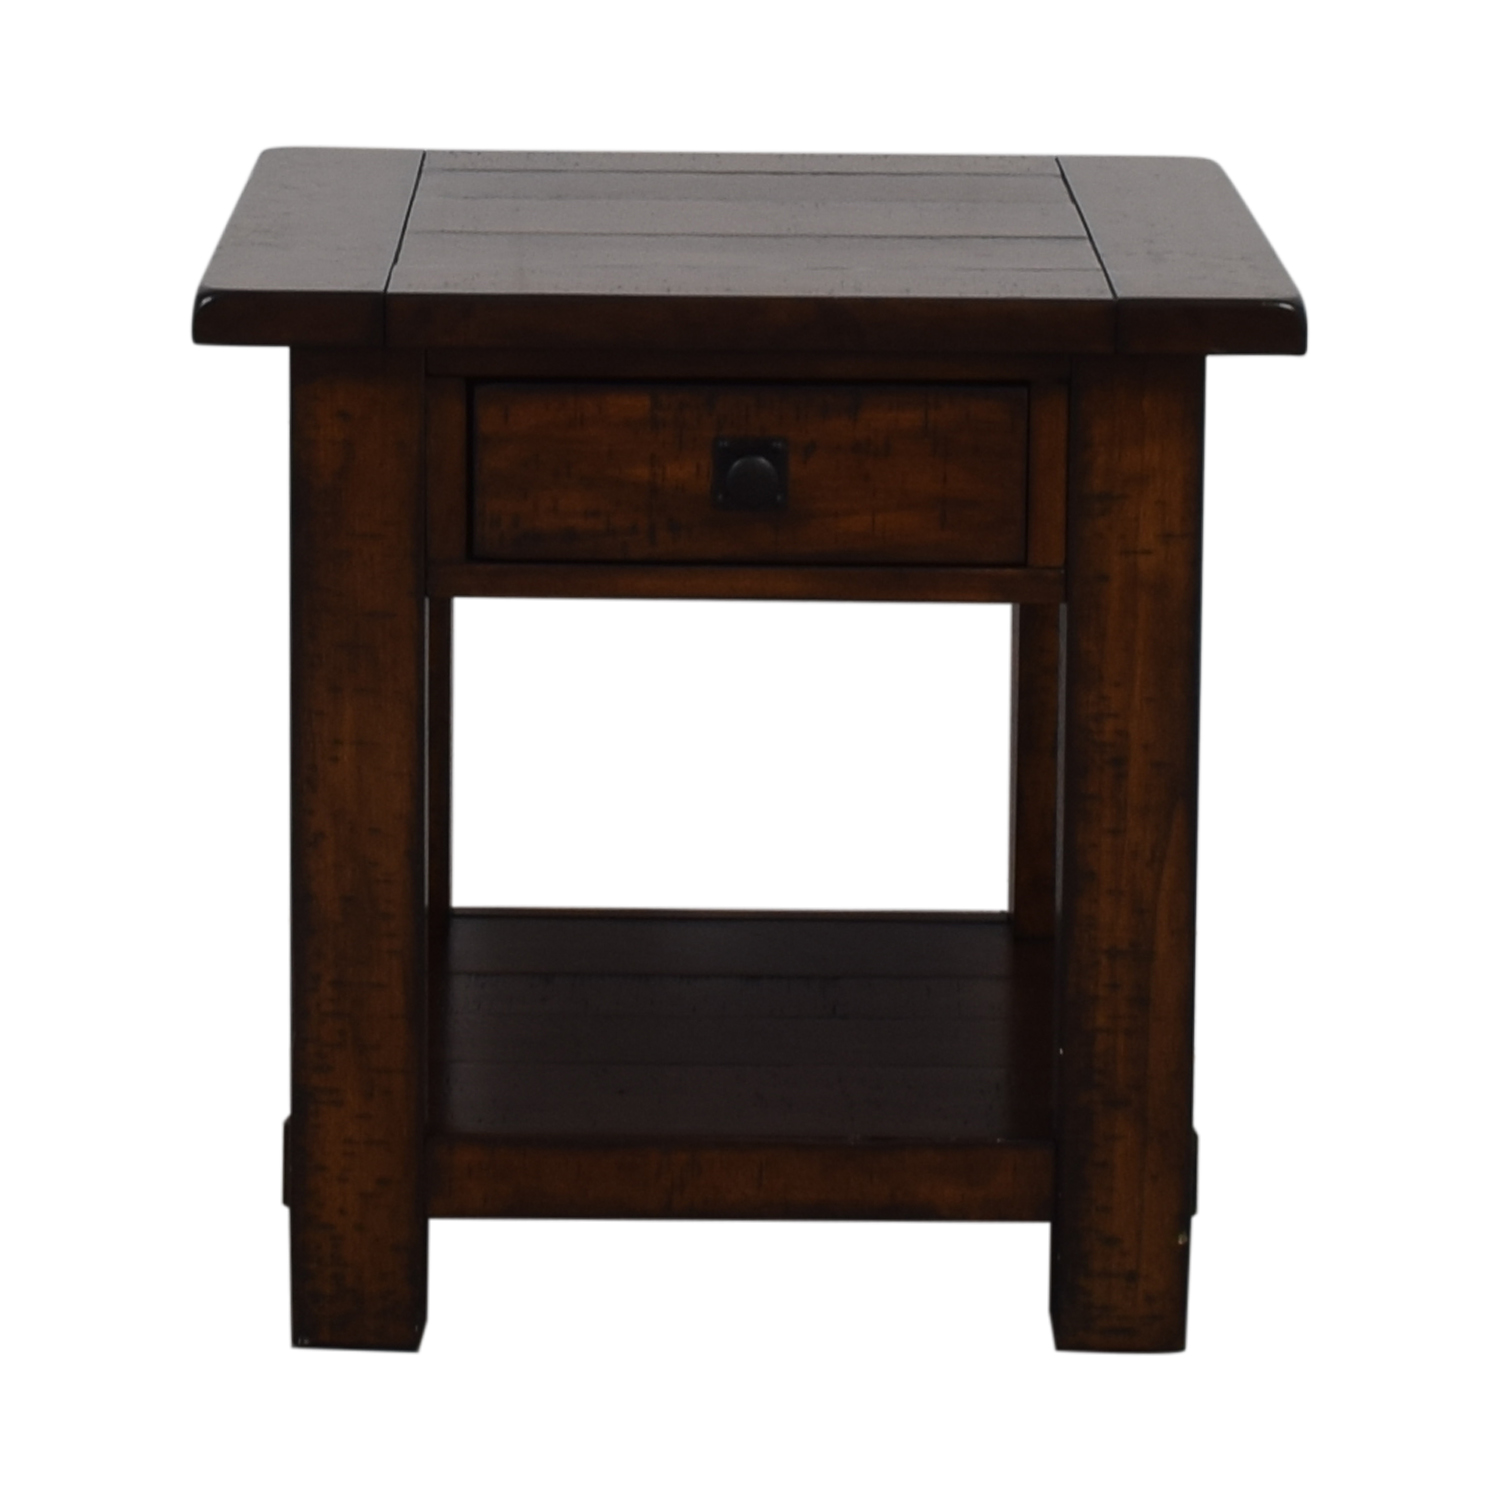 buy Pottery Barn Pottery Barn Benchwright Single Drawer Side Table online